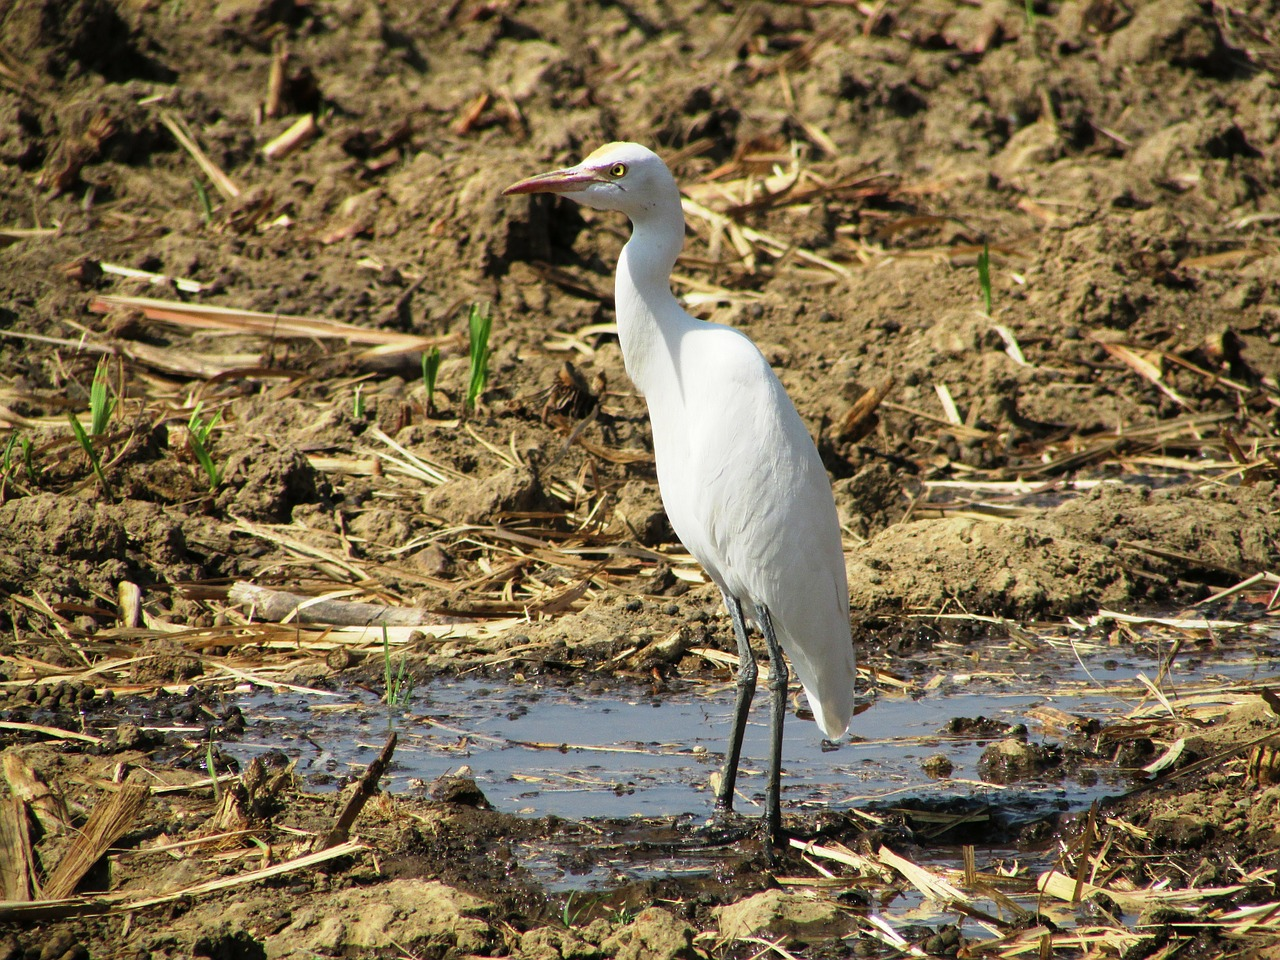 Crane,dharwad,india,bird,fly - free photo from needpix com